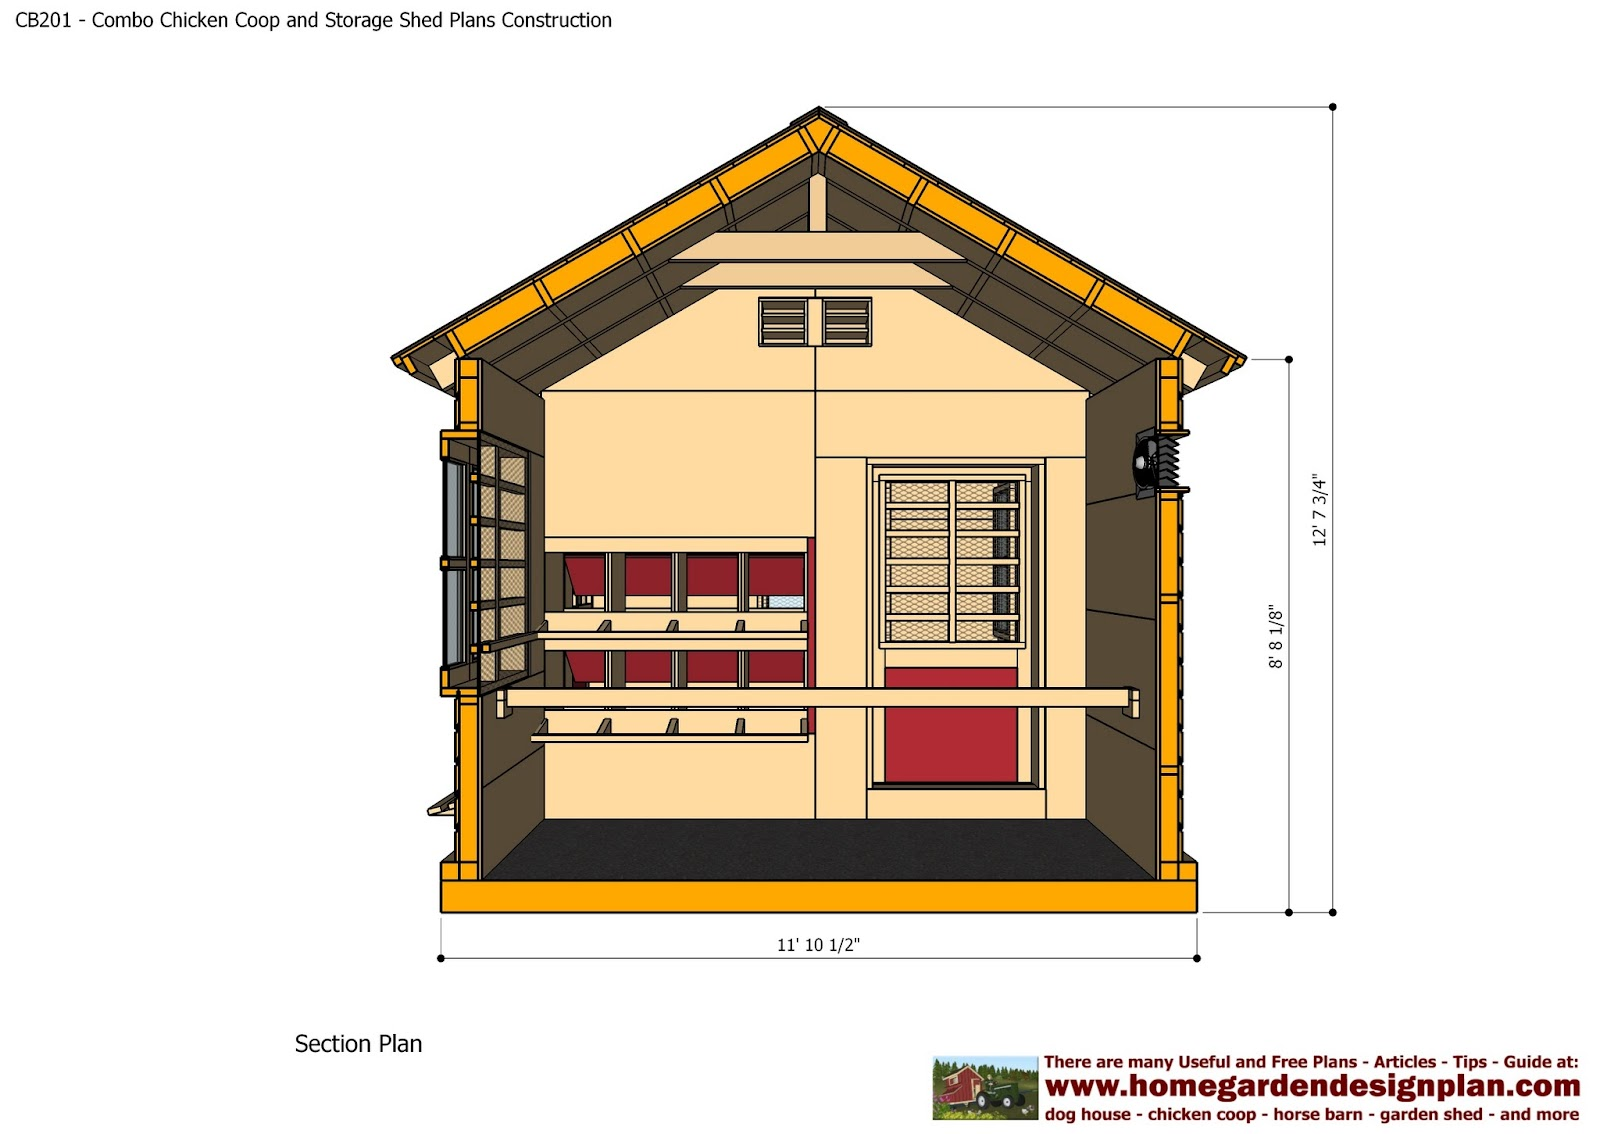 Shed plans colonial style cb201 combo plans chicken coop for Garden building plans